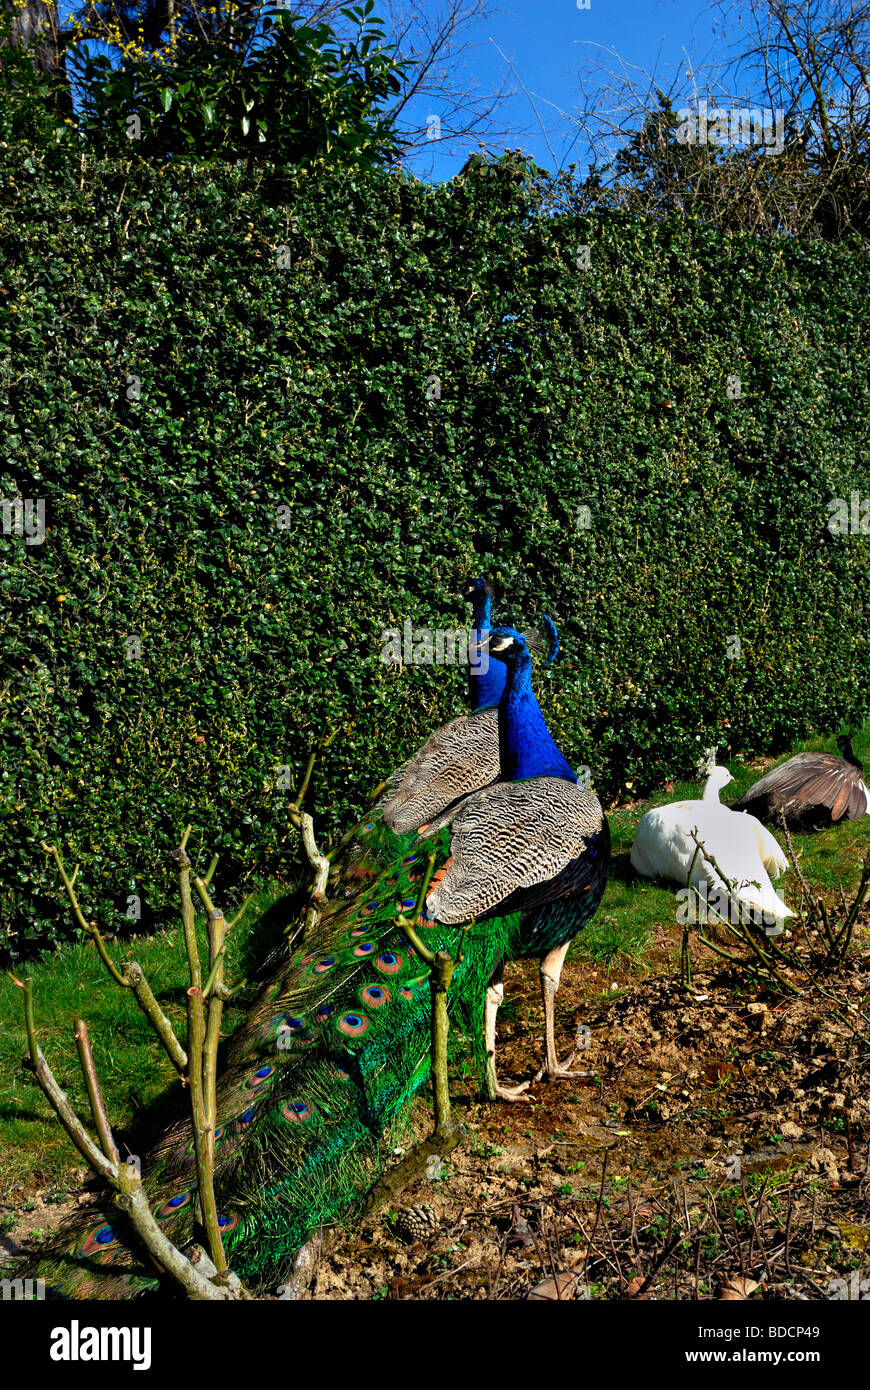 Paris France, Outside in 'Bagatelle Garden' Group of Peacocks, promenading, Early Spring Day - Stock Image